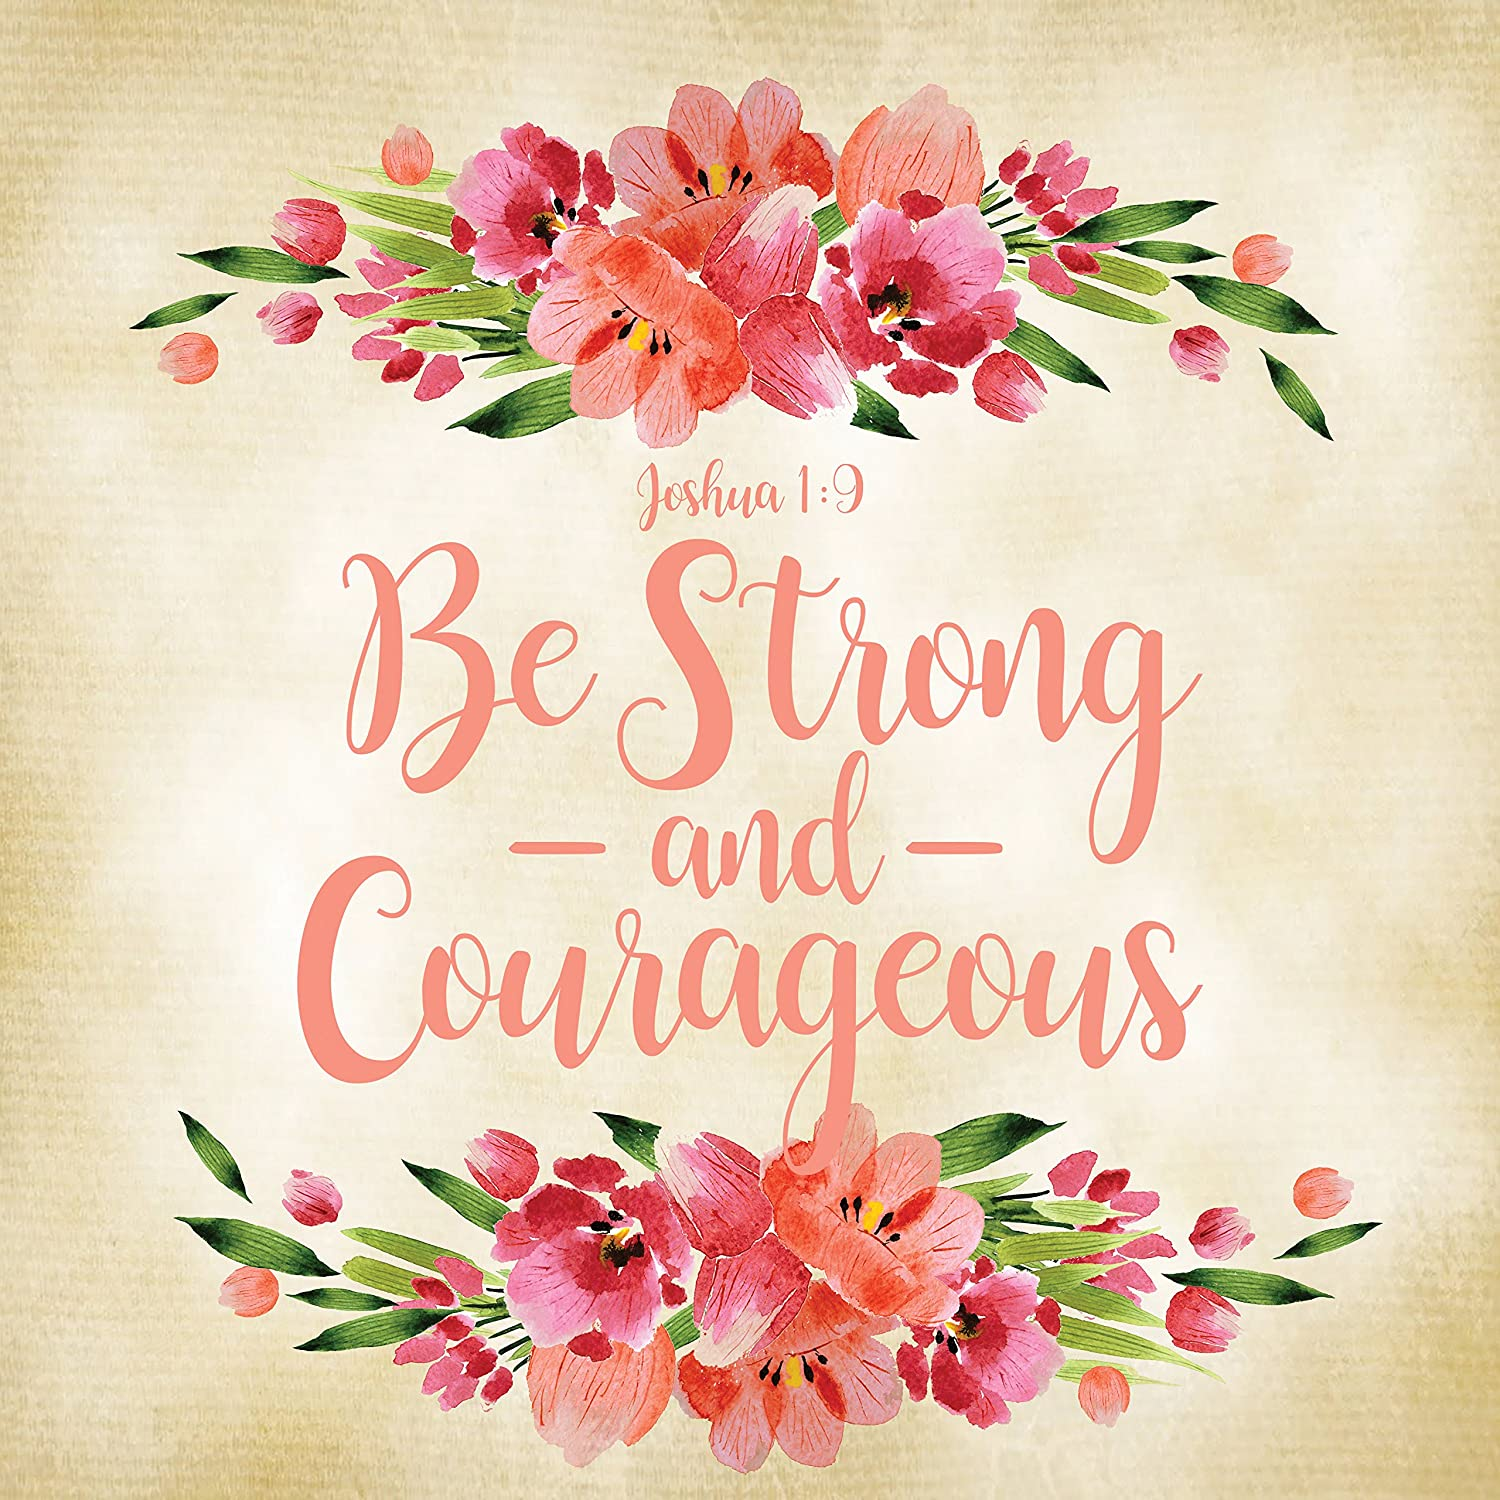 Urban House Design Inspirational Canvas Wall Art- Be Strong & Courageous, Joshua 1:9